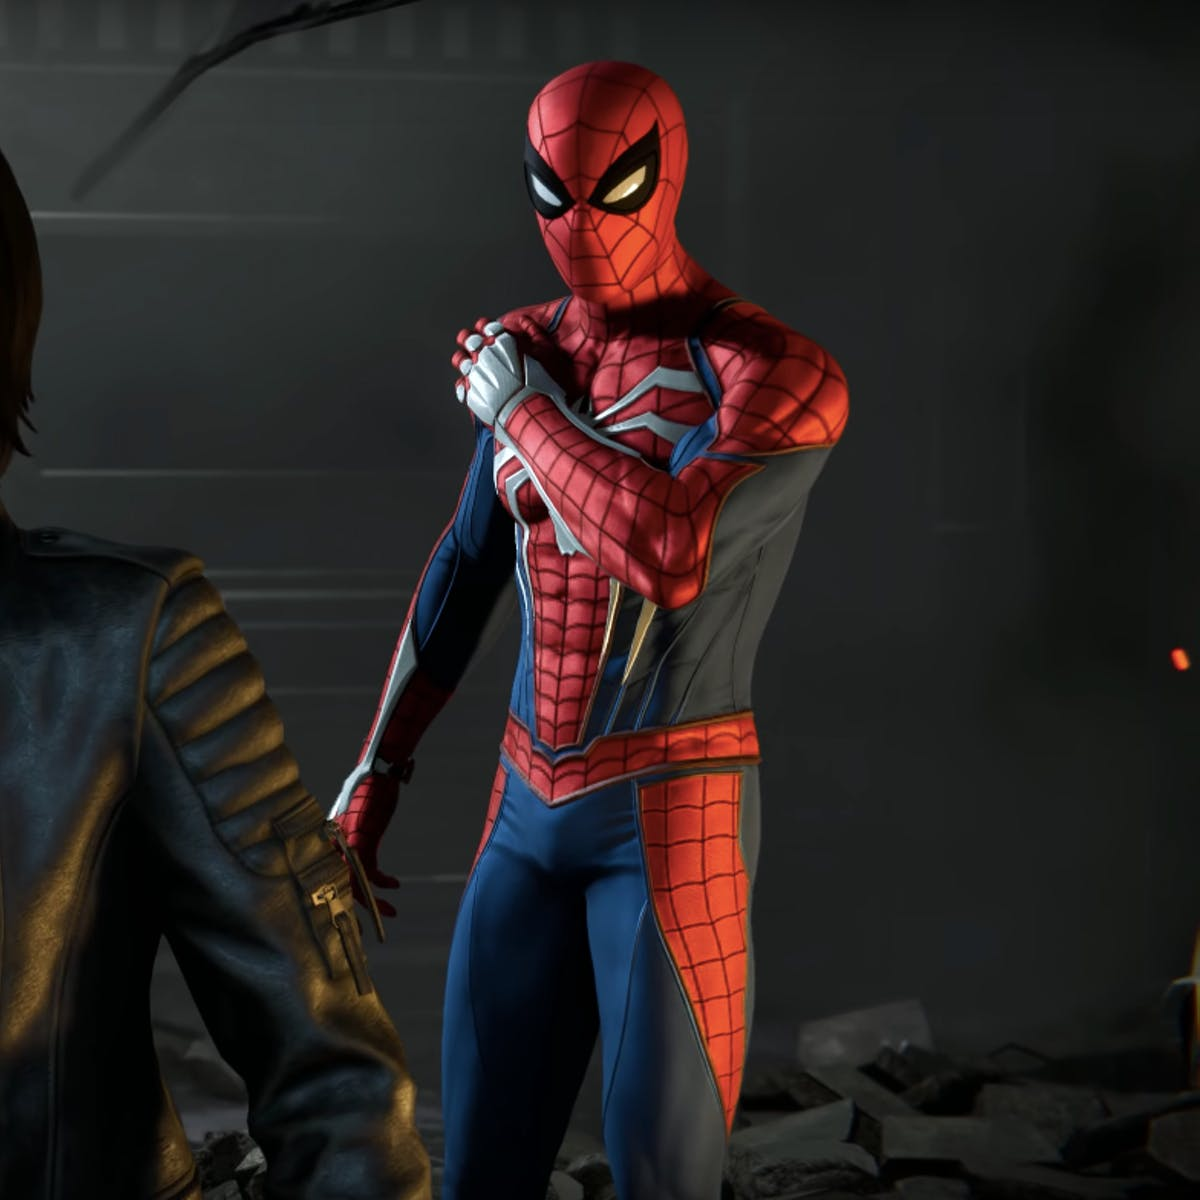 Spider-Man' PS4 Spoilers: Yuri Watanabe as Wraith, Explained   Inverse